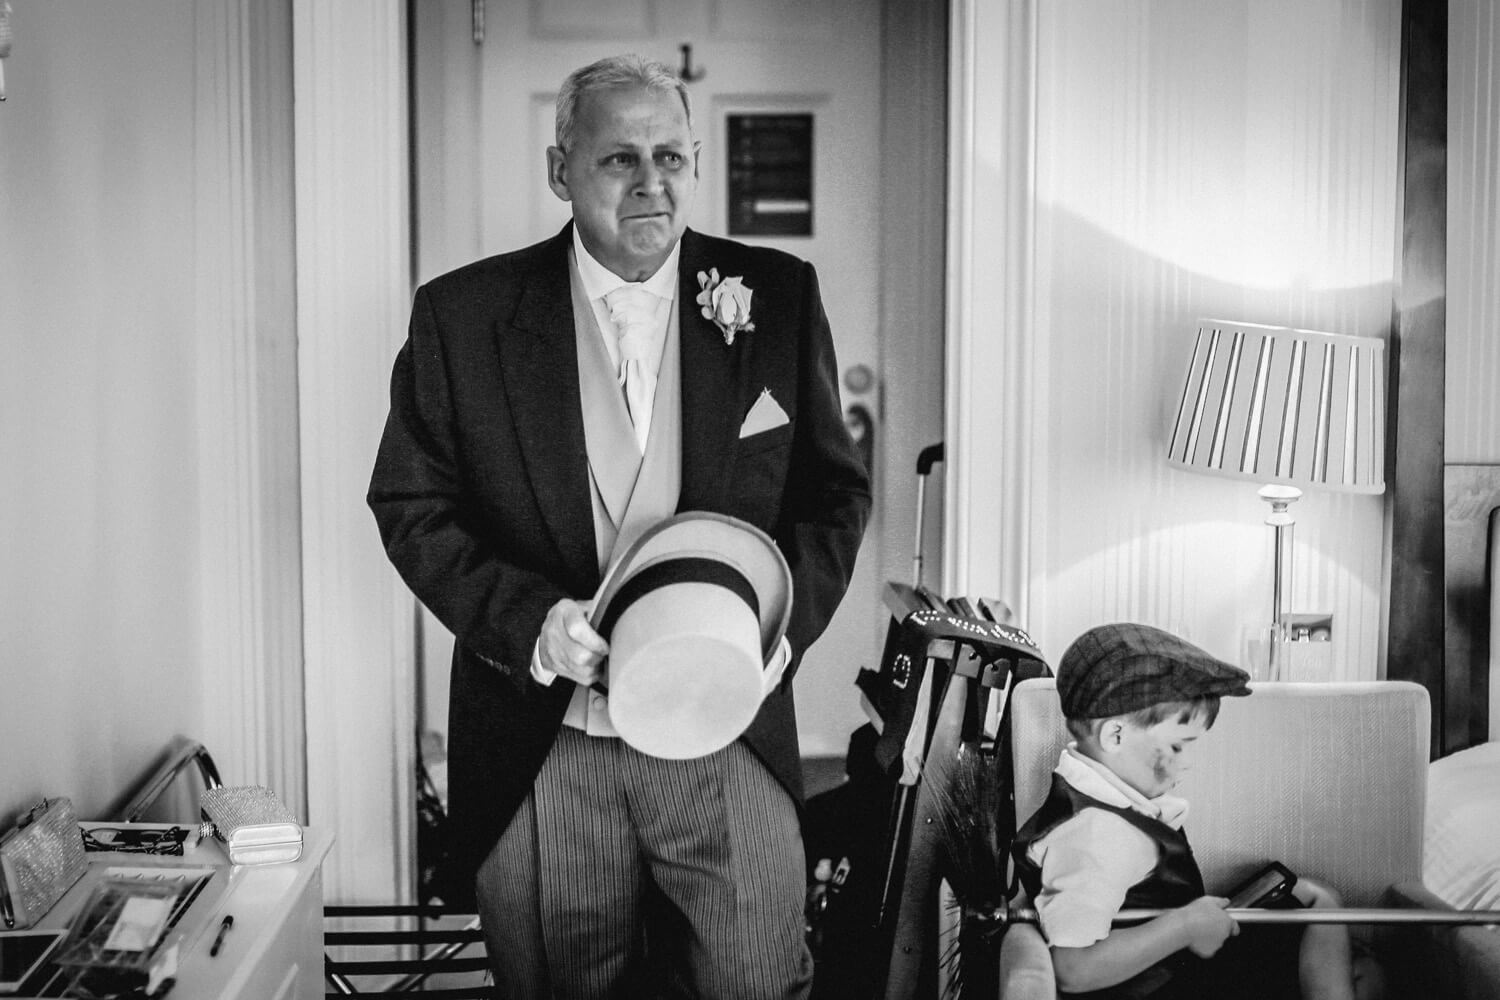 THE BELSFIELD LAURA ASHLEY HOTEL WEDDING PHOTOGRAPHY